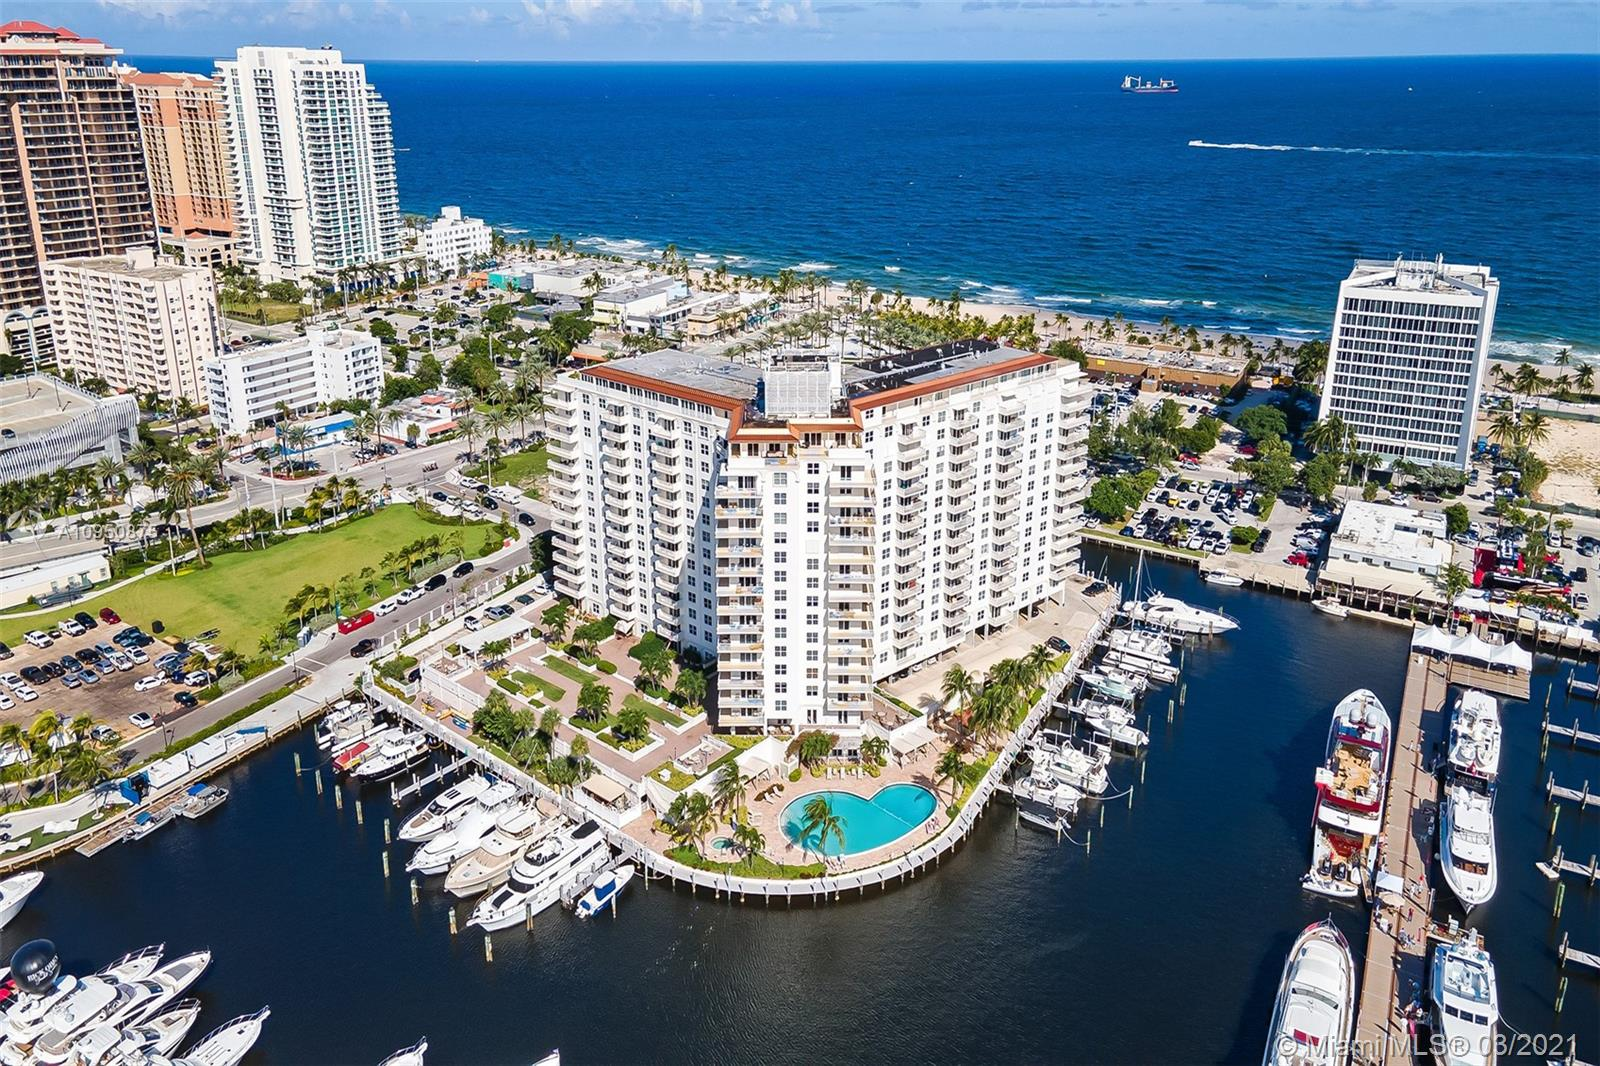 LIVE THE WATERFRONT LIFESTYLE AT THE OCEAN IN DOWNTOWN FORT LAUDERDALE*BEAUTIFUL BALCONY WITH OCEAN, BEACH & WATER VIEWS IN EVERY DIRECTION*EAST VIEW TO ATLANTIC OCEAN & PARK*MARINA WITH DOCK AVAILABLE UP TO 80 FT, NO FIXED BRIDGES, ACCESS TO INTERCOASTAL & OCEAN*COMMUNITY DOCK FOR RENT*THE VENETIAN FEATURES LUXURY RESORT STYLE LIVING*WALK TO THE BEACH & NEW PARK*10 MINUTES TO FLL AIRPORT*ENJOY TIKI BAR, BBQ, SPA, POOL, GARDENS, FREE WIFI, 24HR SECURITY, TABLE TENNIS, BILLARD, SHUFFLEBOARD, EXPANSIVE FITNESS CENTER*ENJOY THE DOWNTOWN RESTAURANTS, ENTERTAINMENT, SHOPPING, FARMERS MARKET & BUSINESS DISTRICT*2 BED/2 BATH 1,500sqft UNIT FEATURES SPLIT BEDROOM FLOORPLAN*PORCELAIN TILE*FULLY FURNISHED, IF BUYER DESIRES*OK TO RENT*VACANT & READY TO SHOW*DOCK RENTAL $1500-$6000 PER YEAR